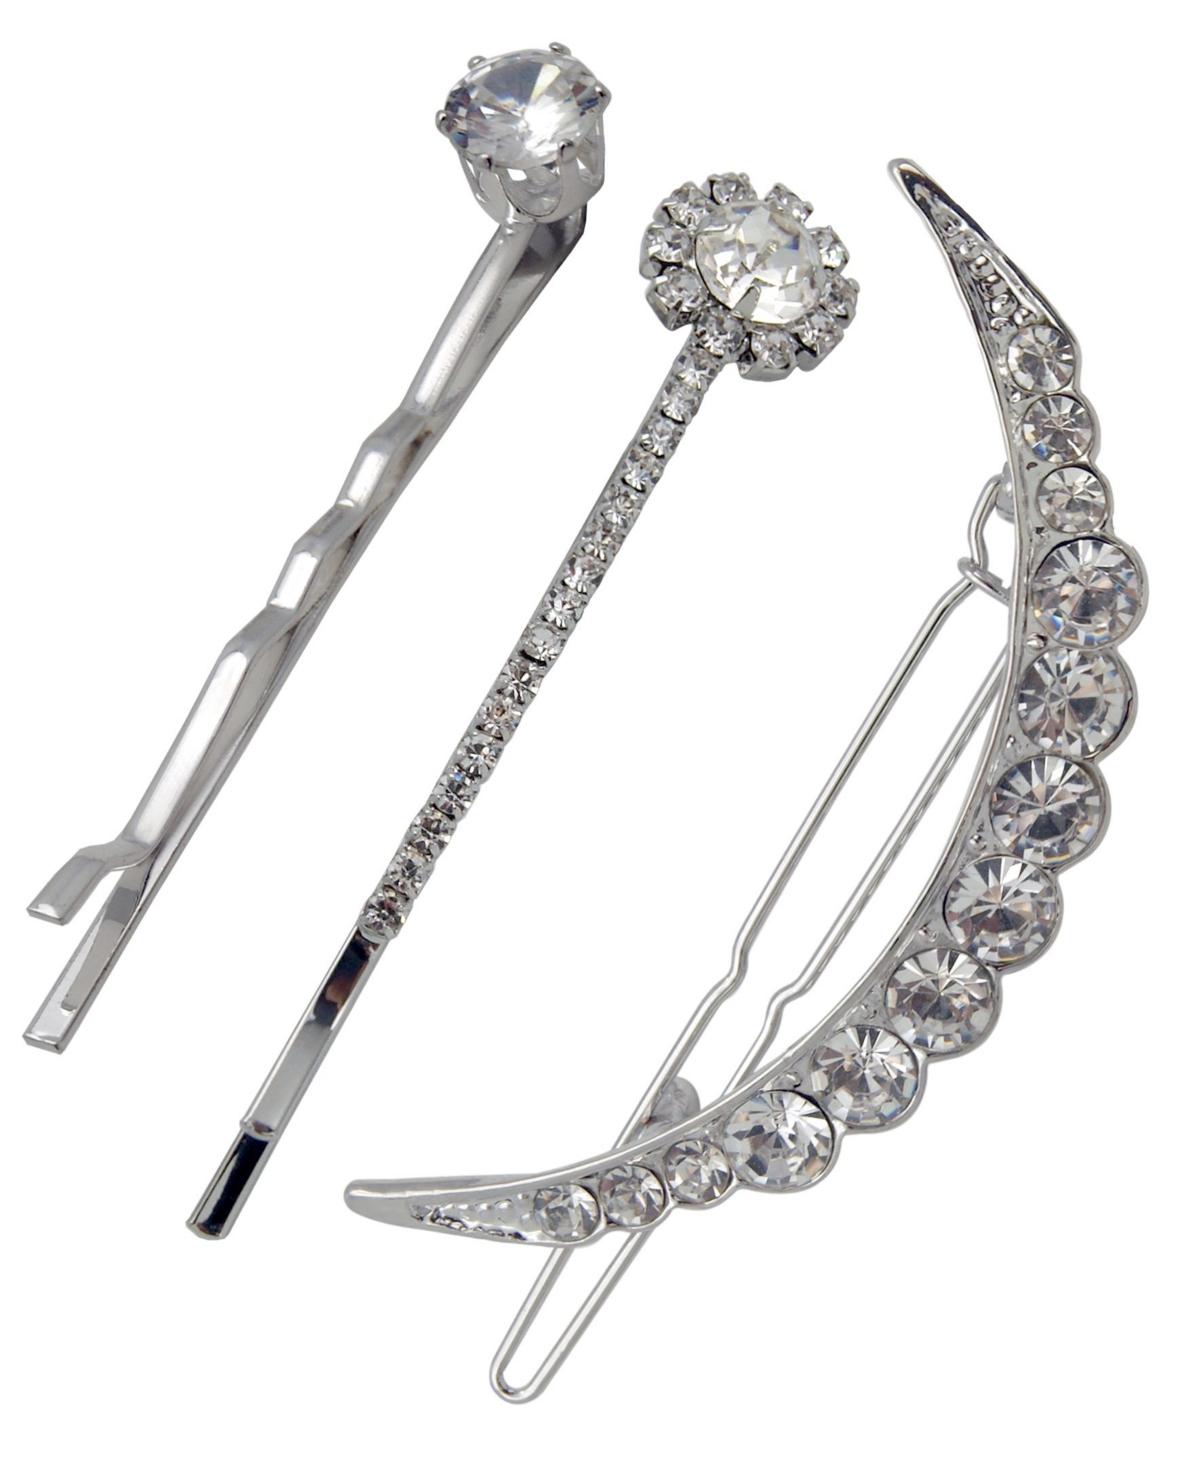 Silver-tone and crystal barrette and hair pin set